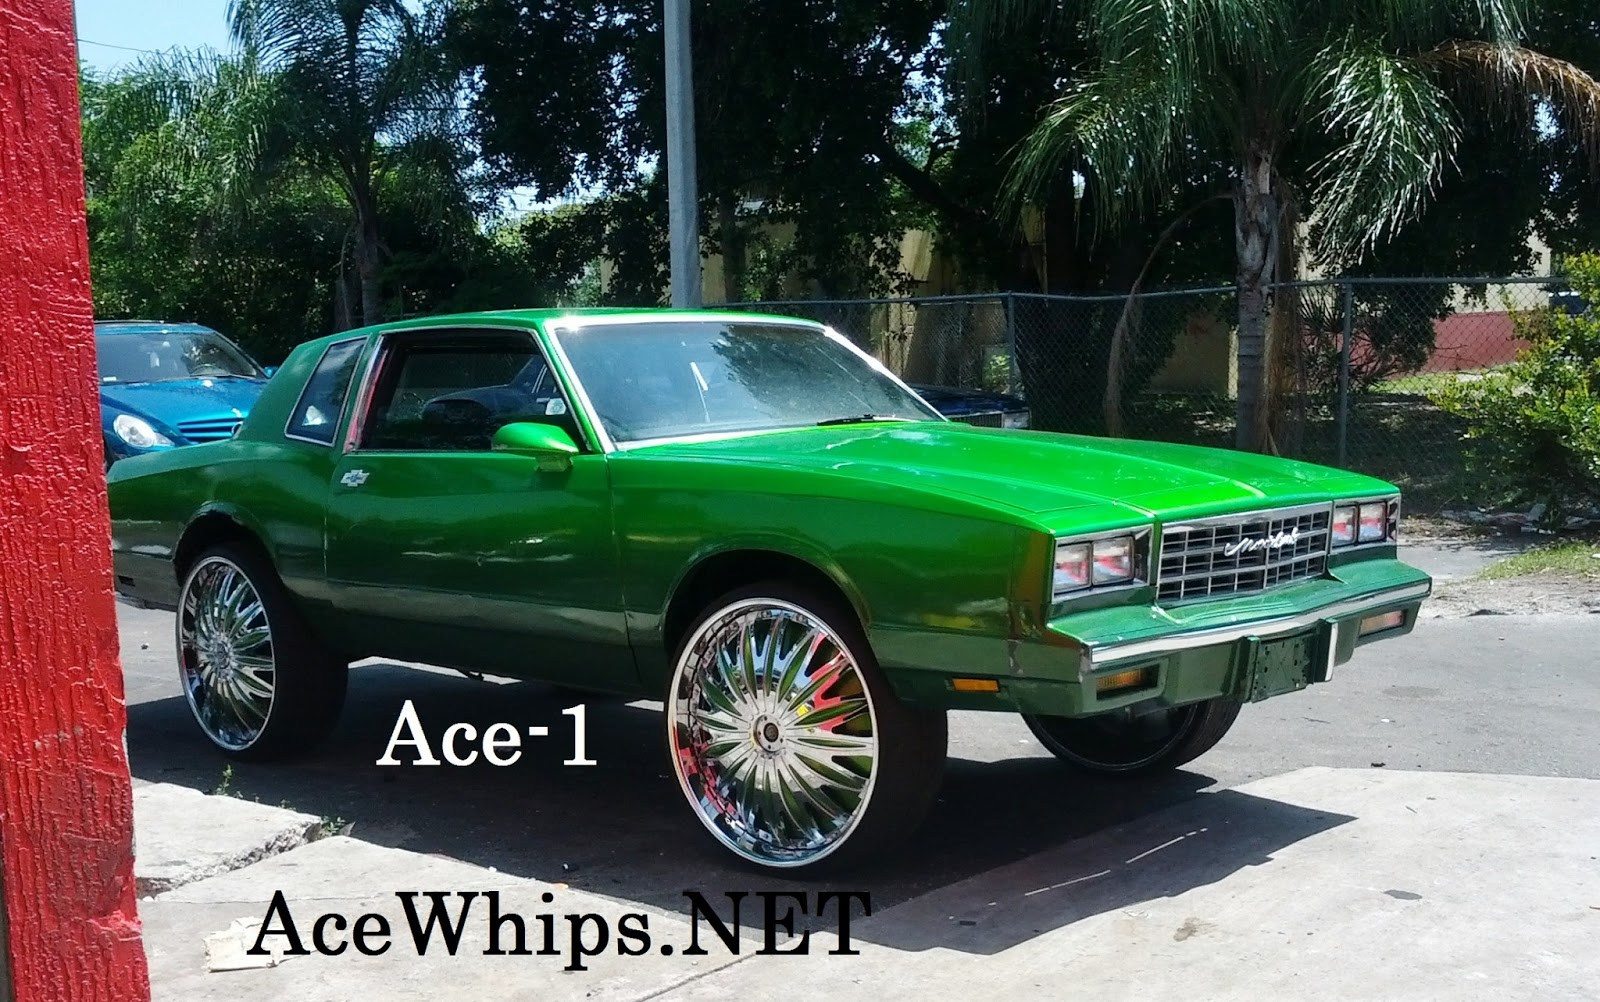 Ace 1 Candy Green Chevy Monte Carlo On 26 Quot Davin Emotion